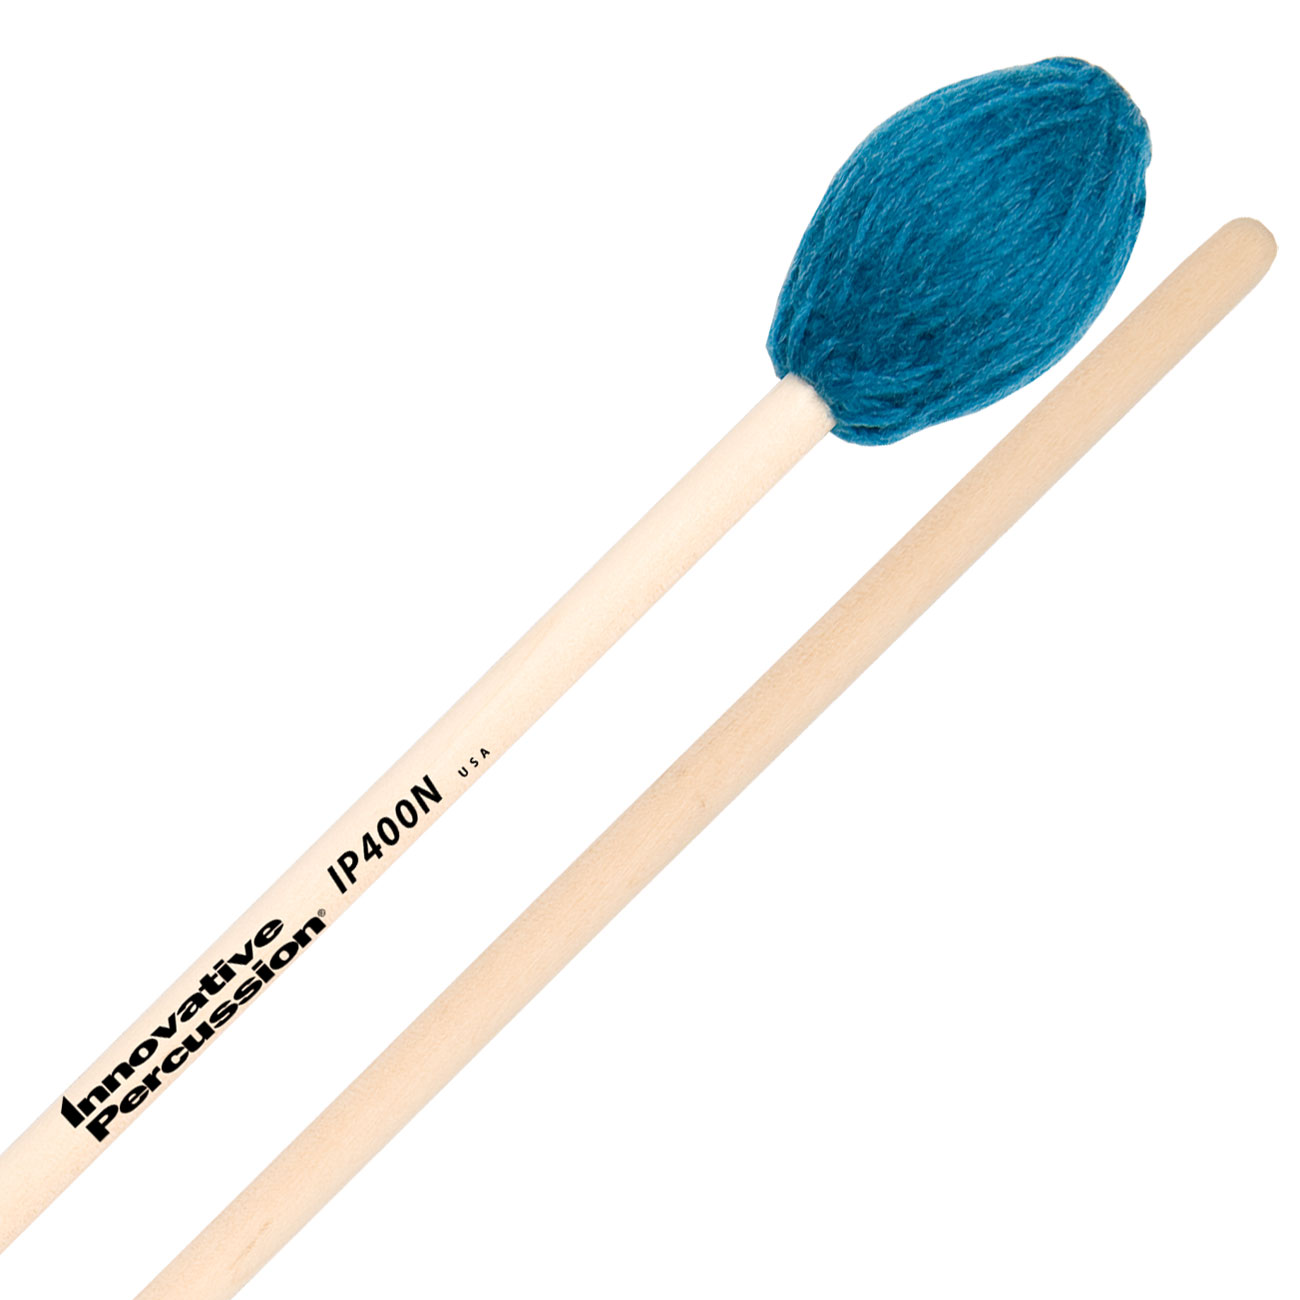 Innovative Percussion IP400N Soloist Series Hard Marimba Mallets with Natural Birch Shafts